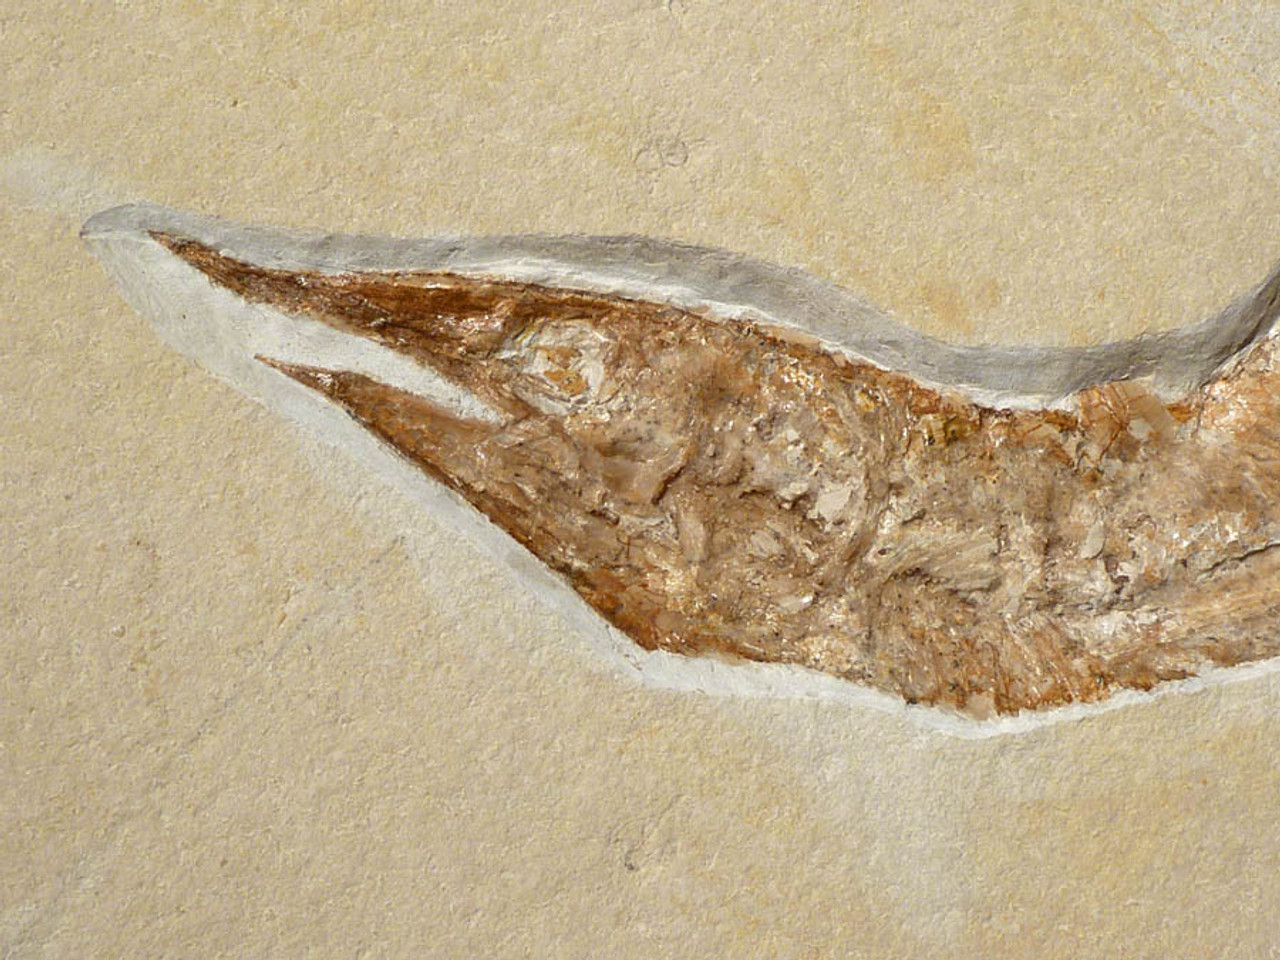 F084 - AESTHETIC AND COLORFUL ASPIDORHYNCHUS JURASSIC FOSSIL FISH FROM SOLNHOFEN GERMANY